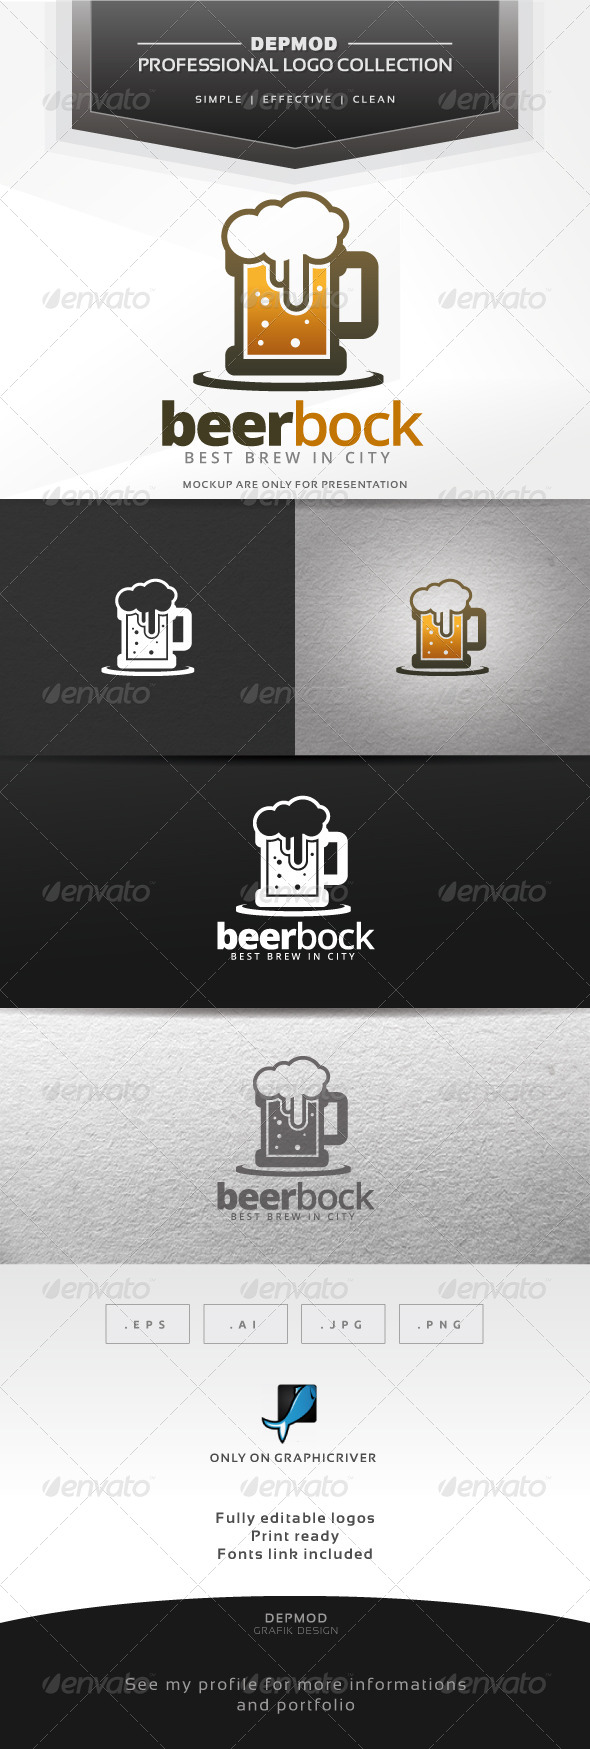 Beer Bock Logo - Food Logo Templates